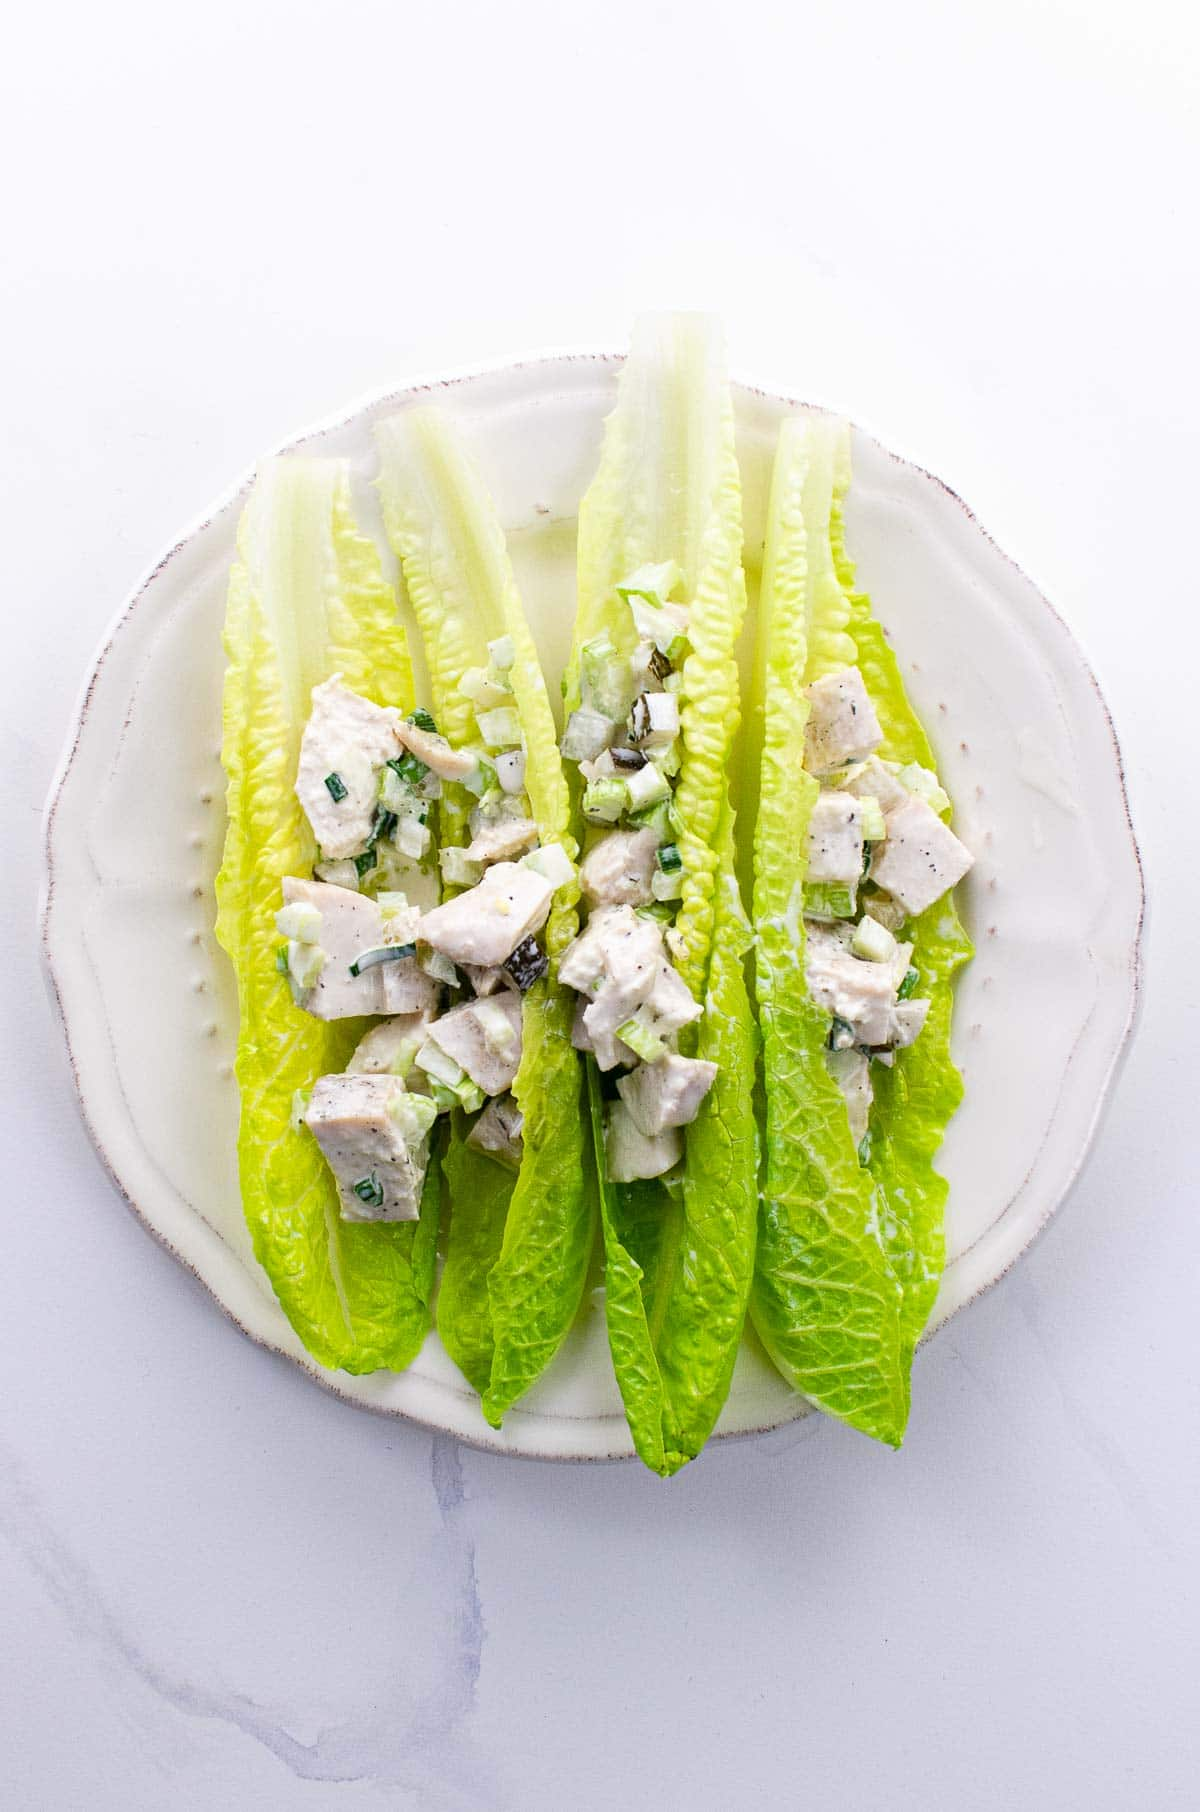 chicken salad with pickles on lettuce leaves